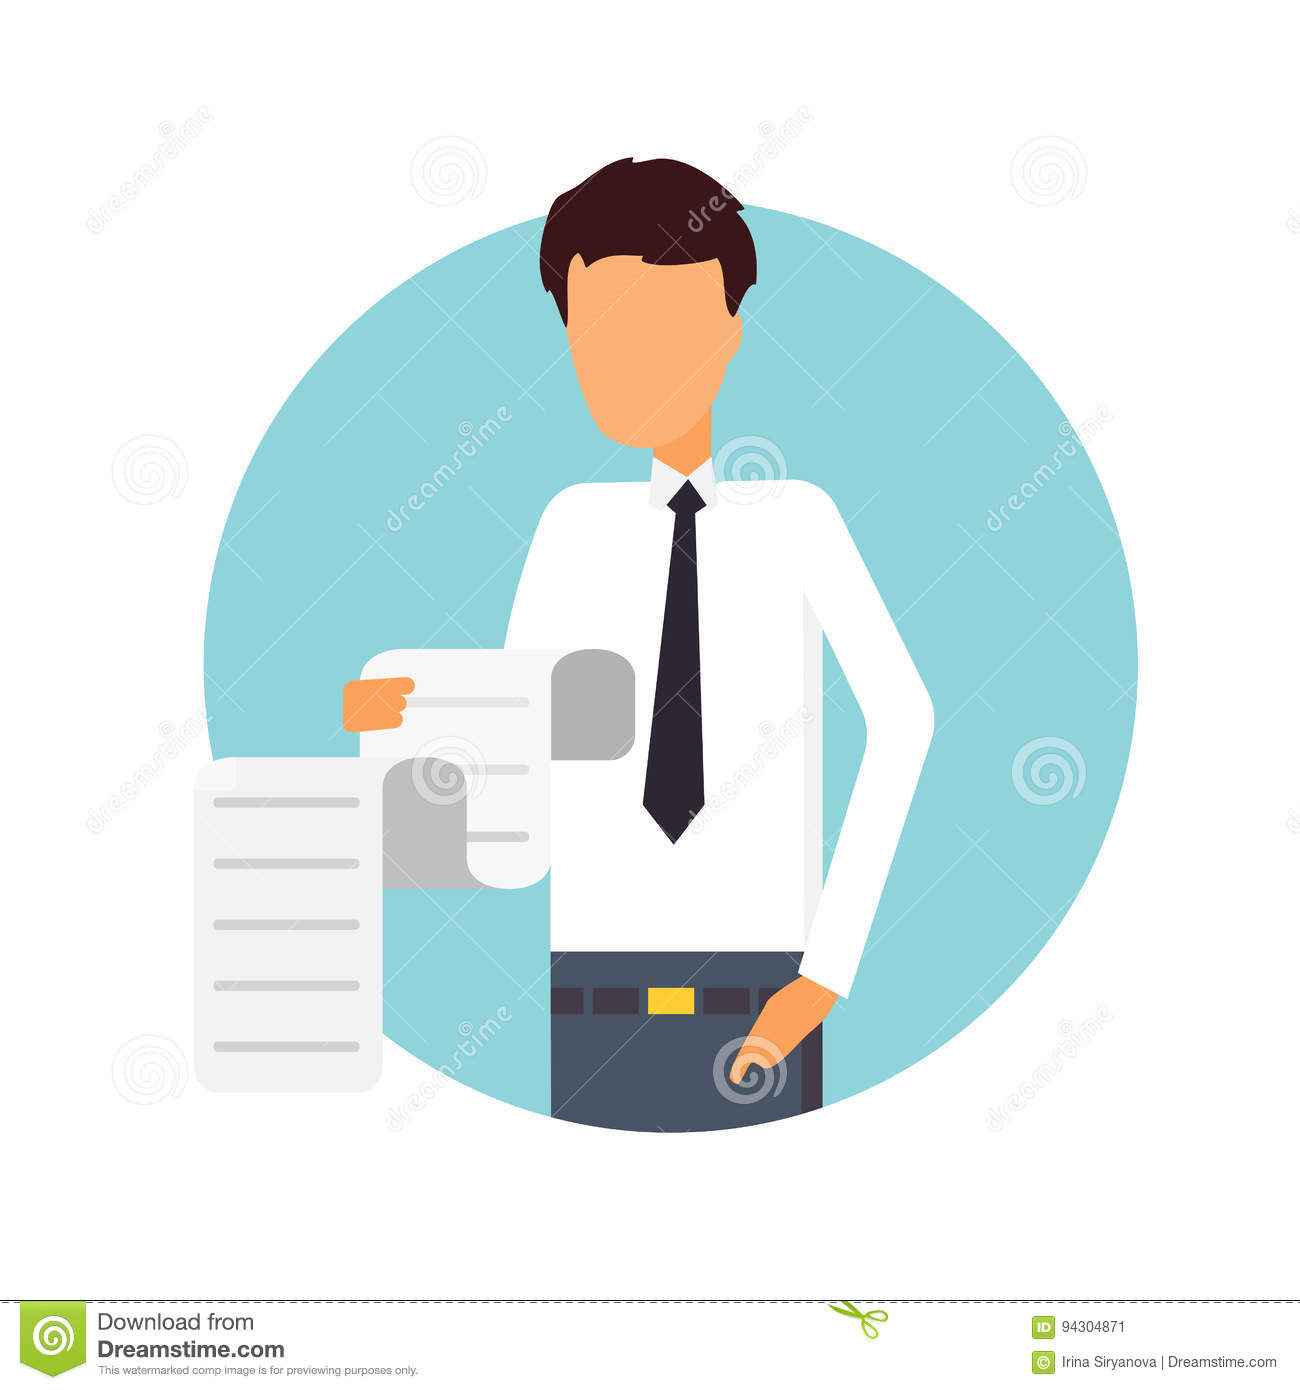 Business clipart business person. Lot